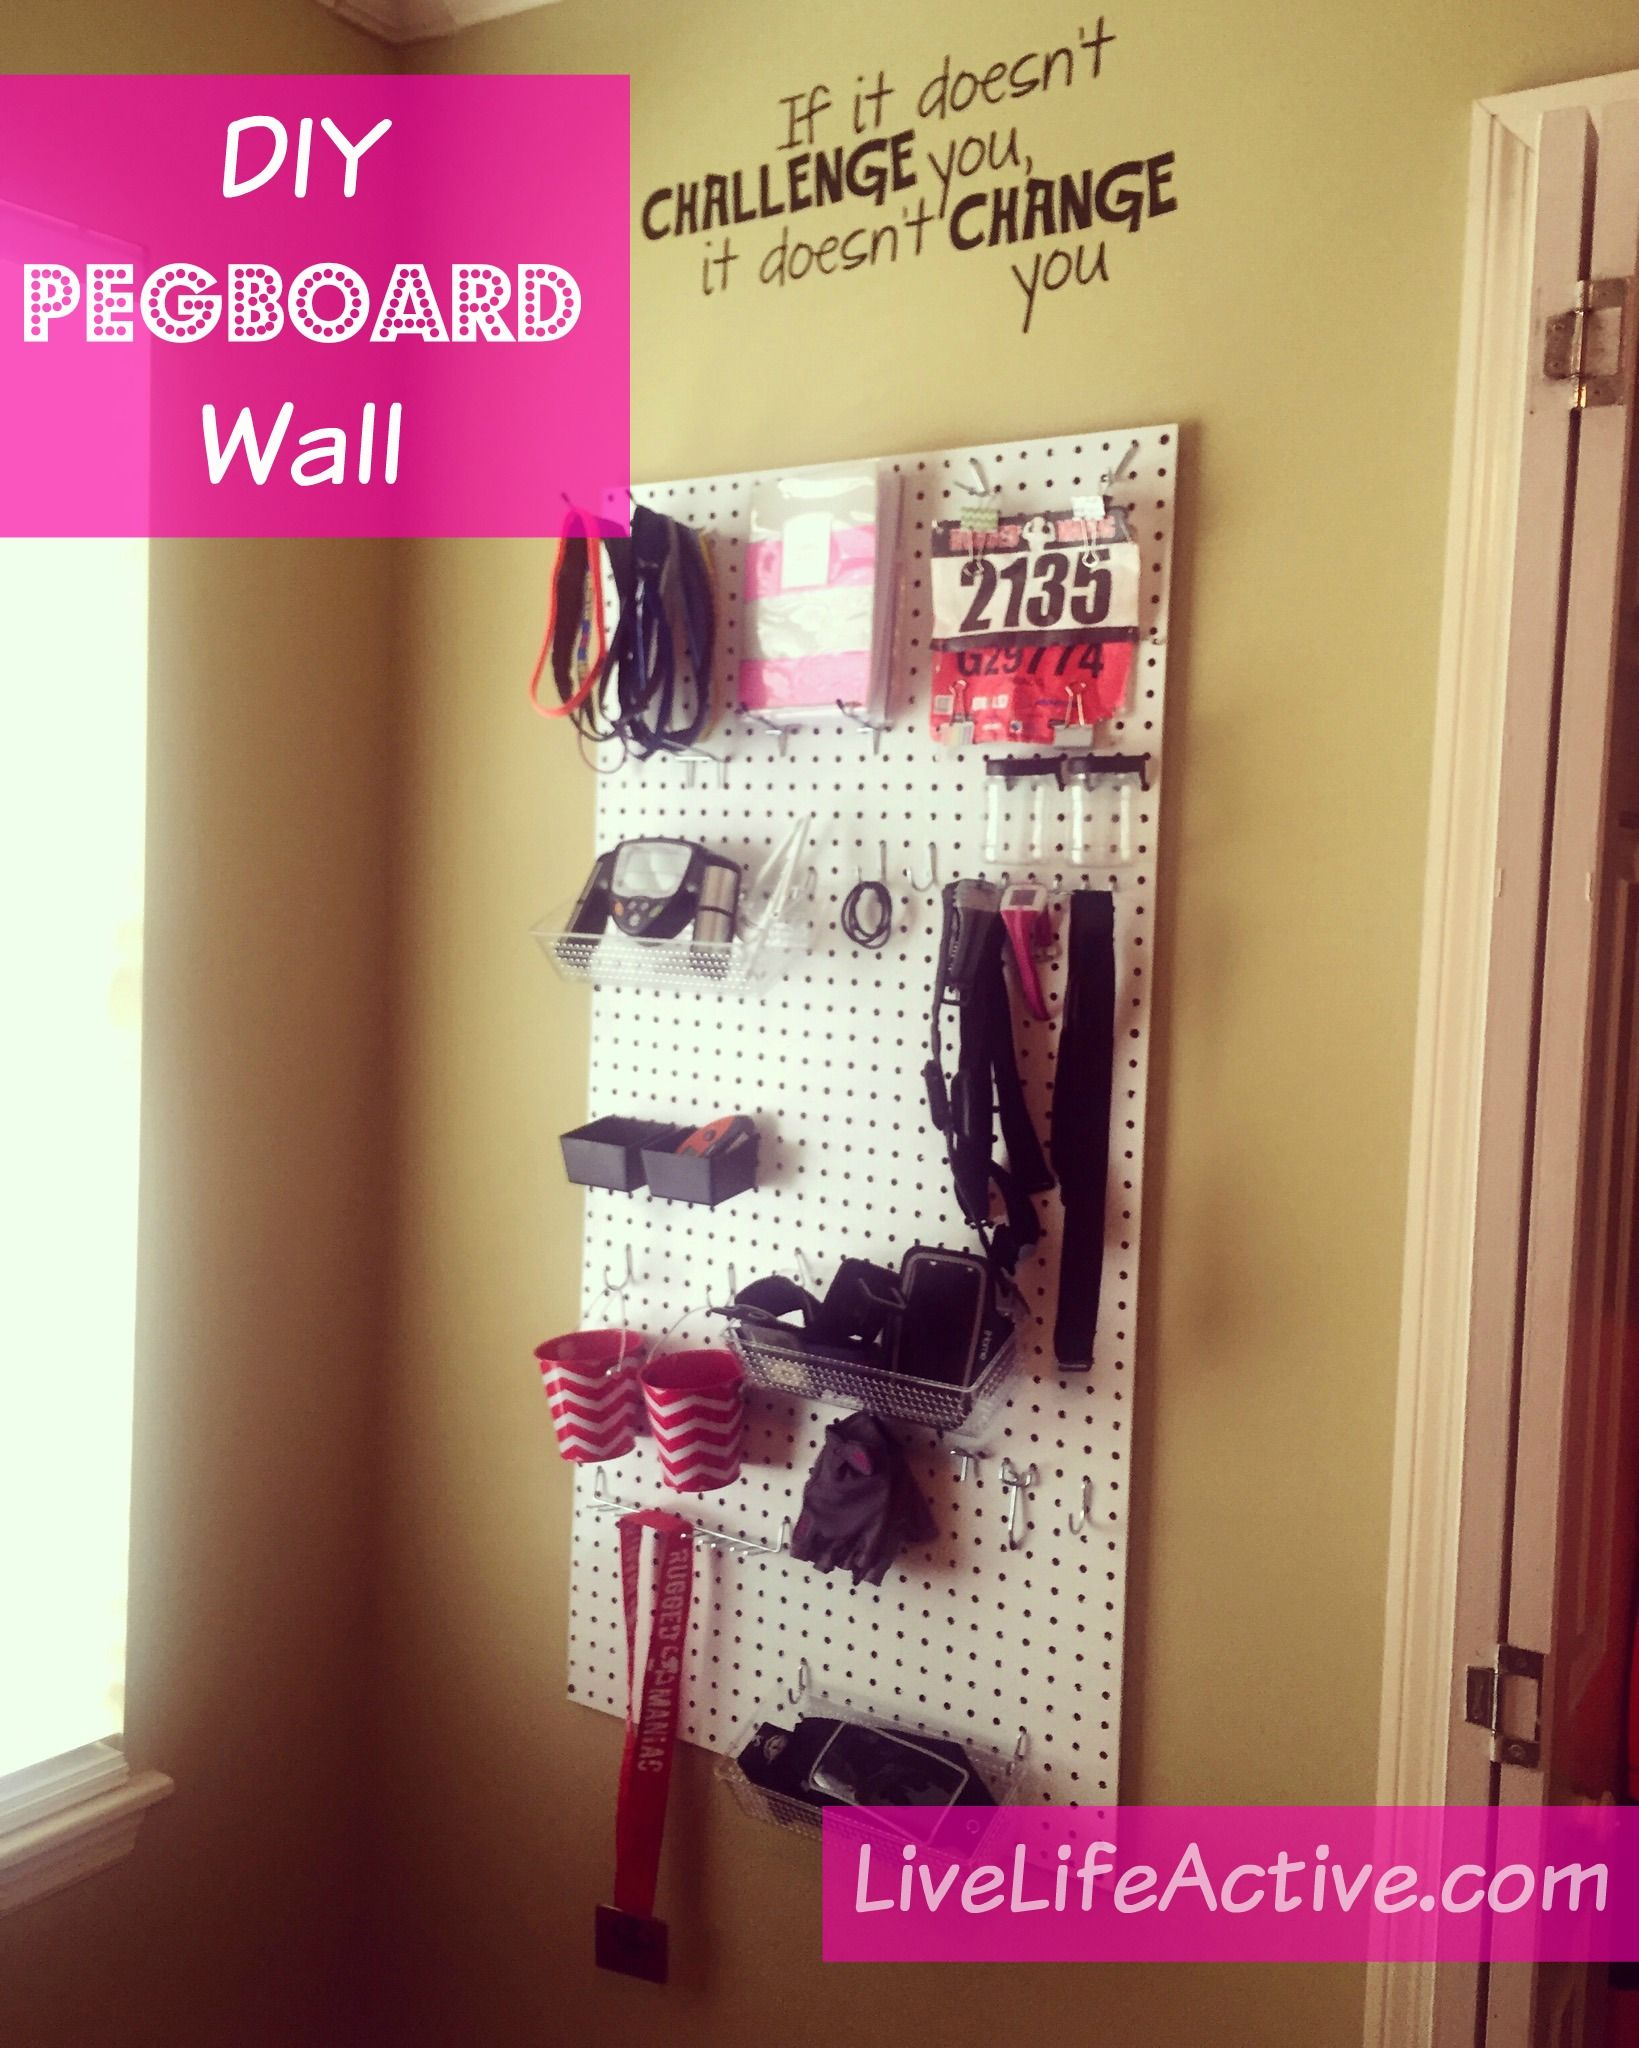 42 Tutorial Gorgeous Example Home Gym Diy Pegboard Wall Live Life Active Fitness Blog Use Diy Home Gym Diy Gym Gym Room At Home